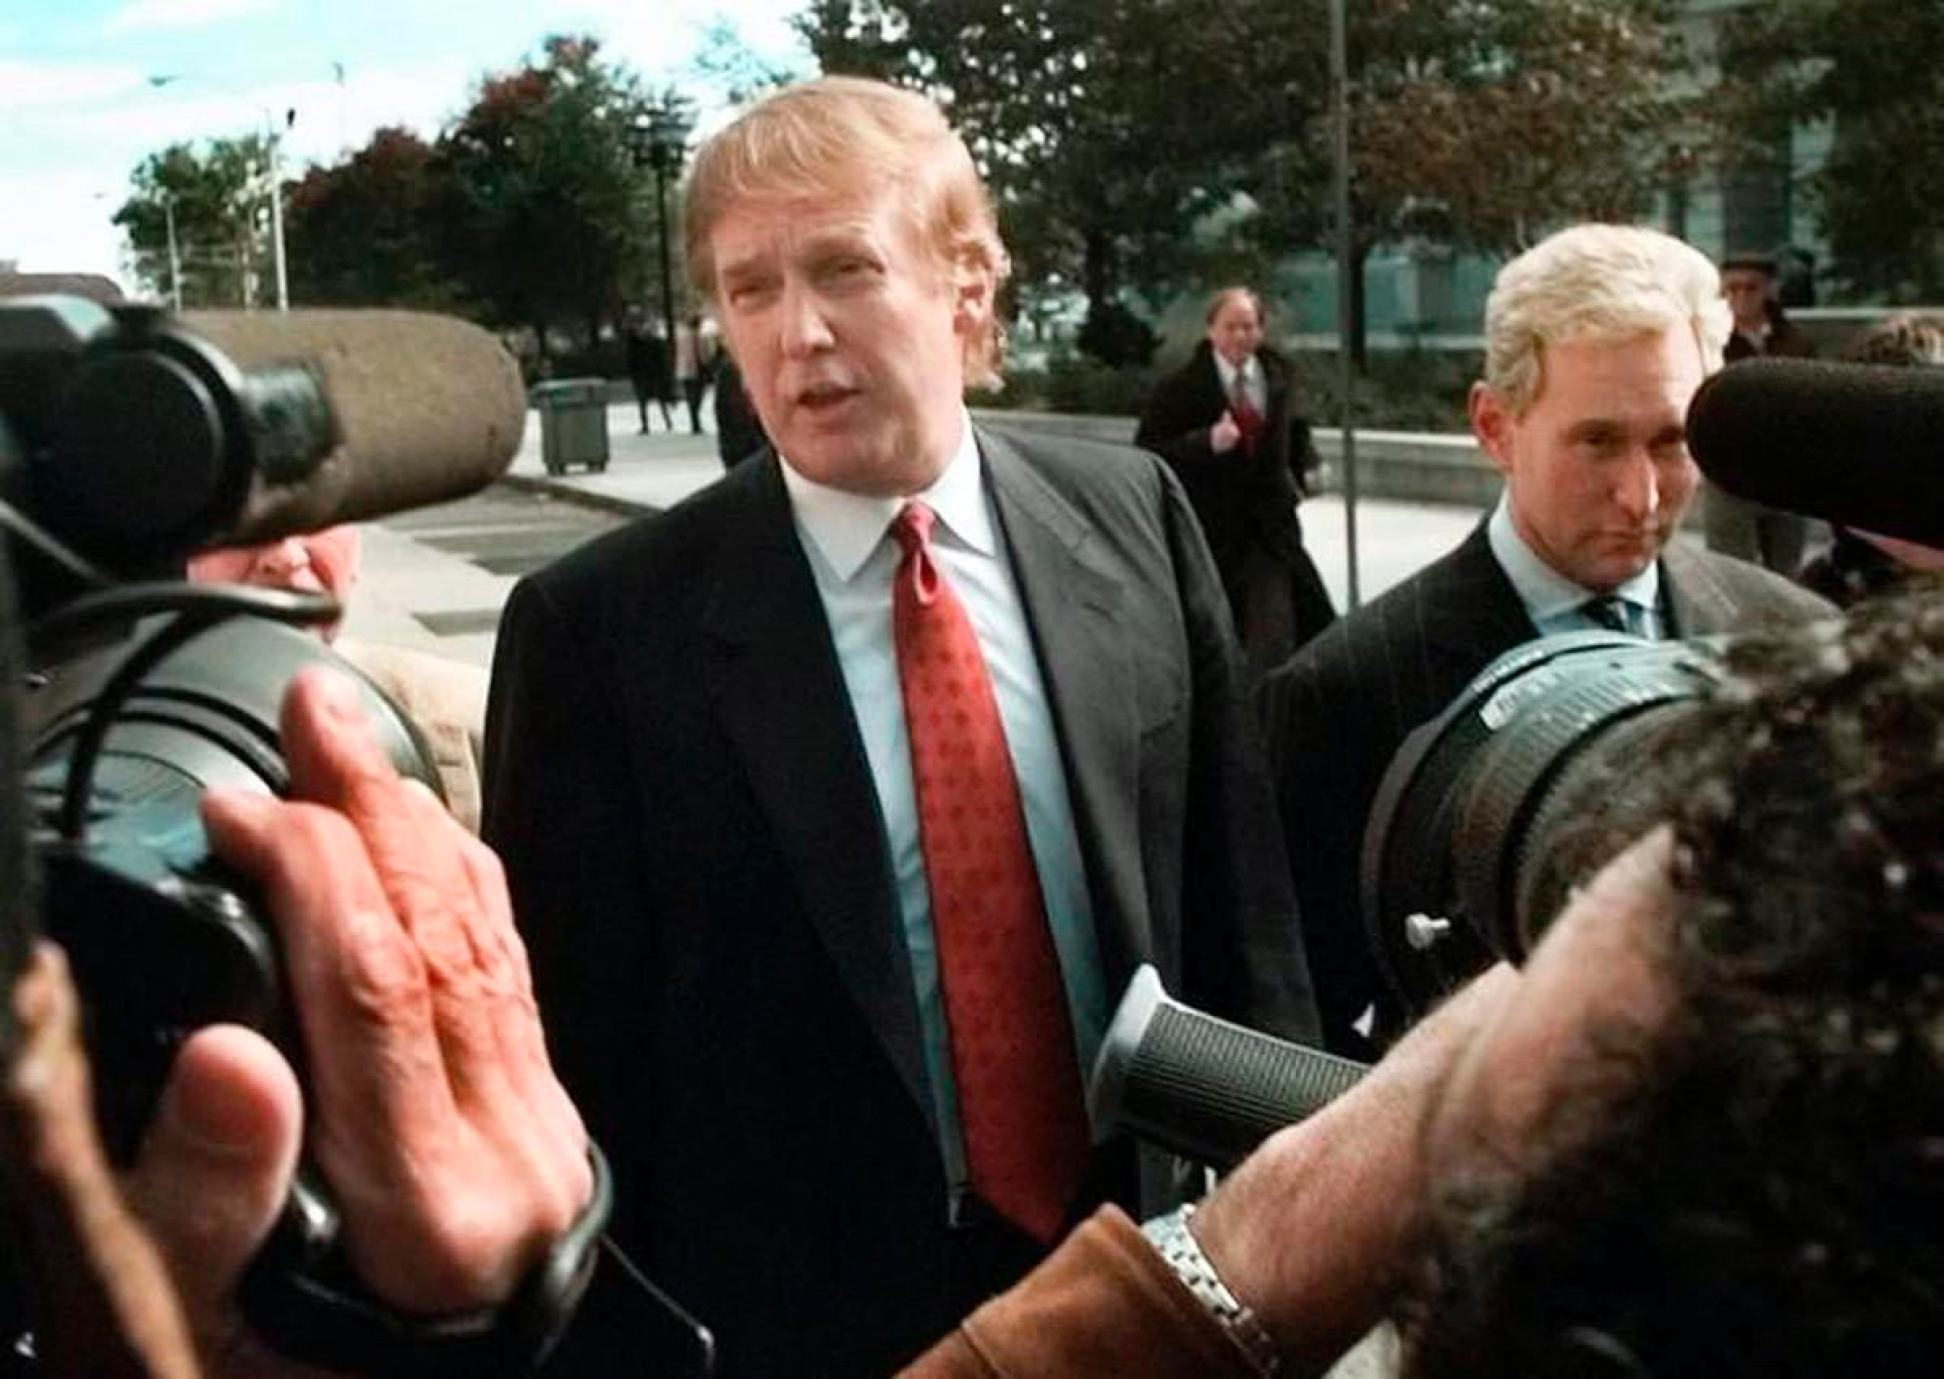 Donald Trump, left, is seen outside the Federal Courthouse in Newark, N.J., with Roger Stone, the director of Trump's presidential exploratory committee Monday, Oct. 25, 1999, for the swearing-in of Trump's sister as a federal appeals court judge. (AP Photo/Daniel Hulshizer)